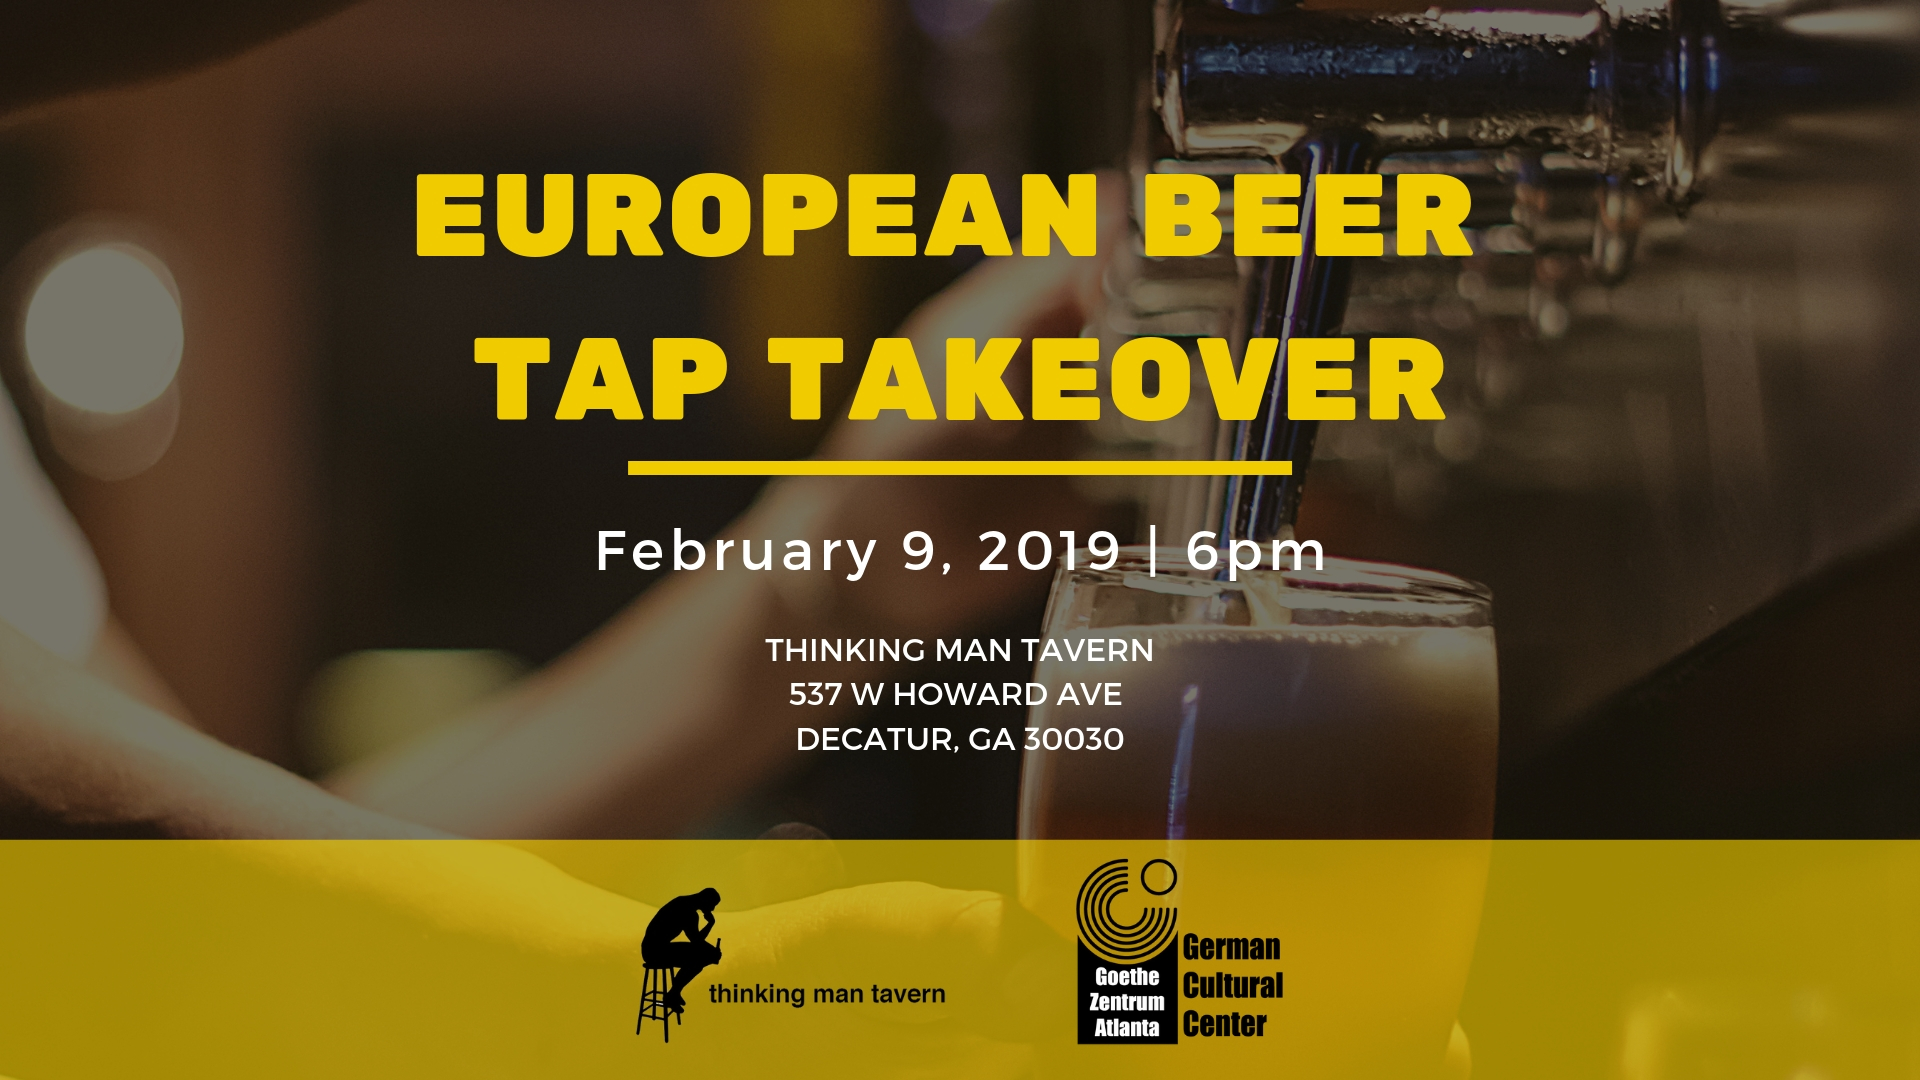 European Beer Tap Takeover